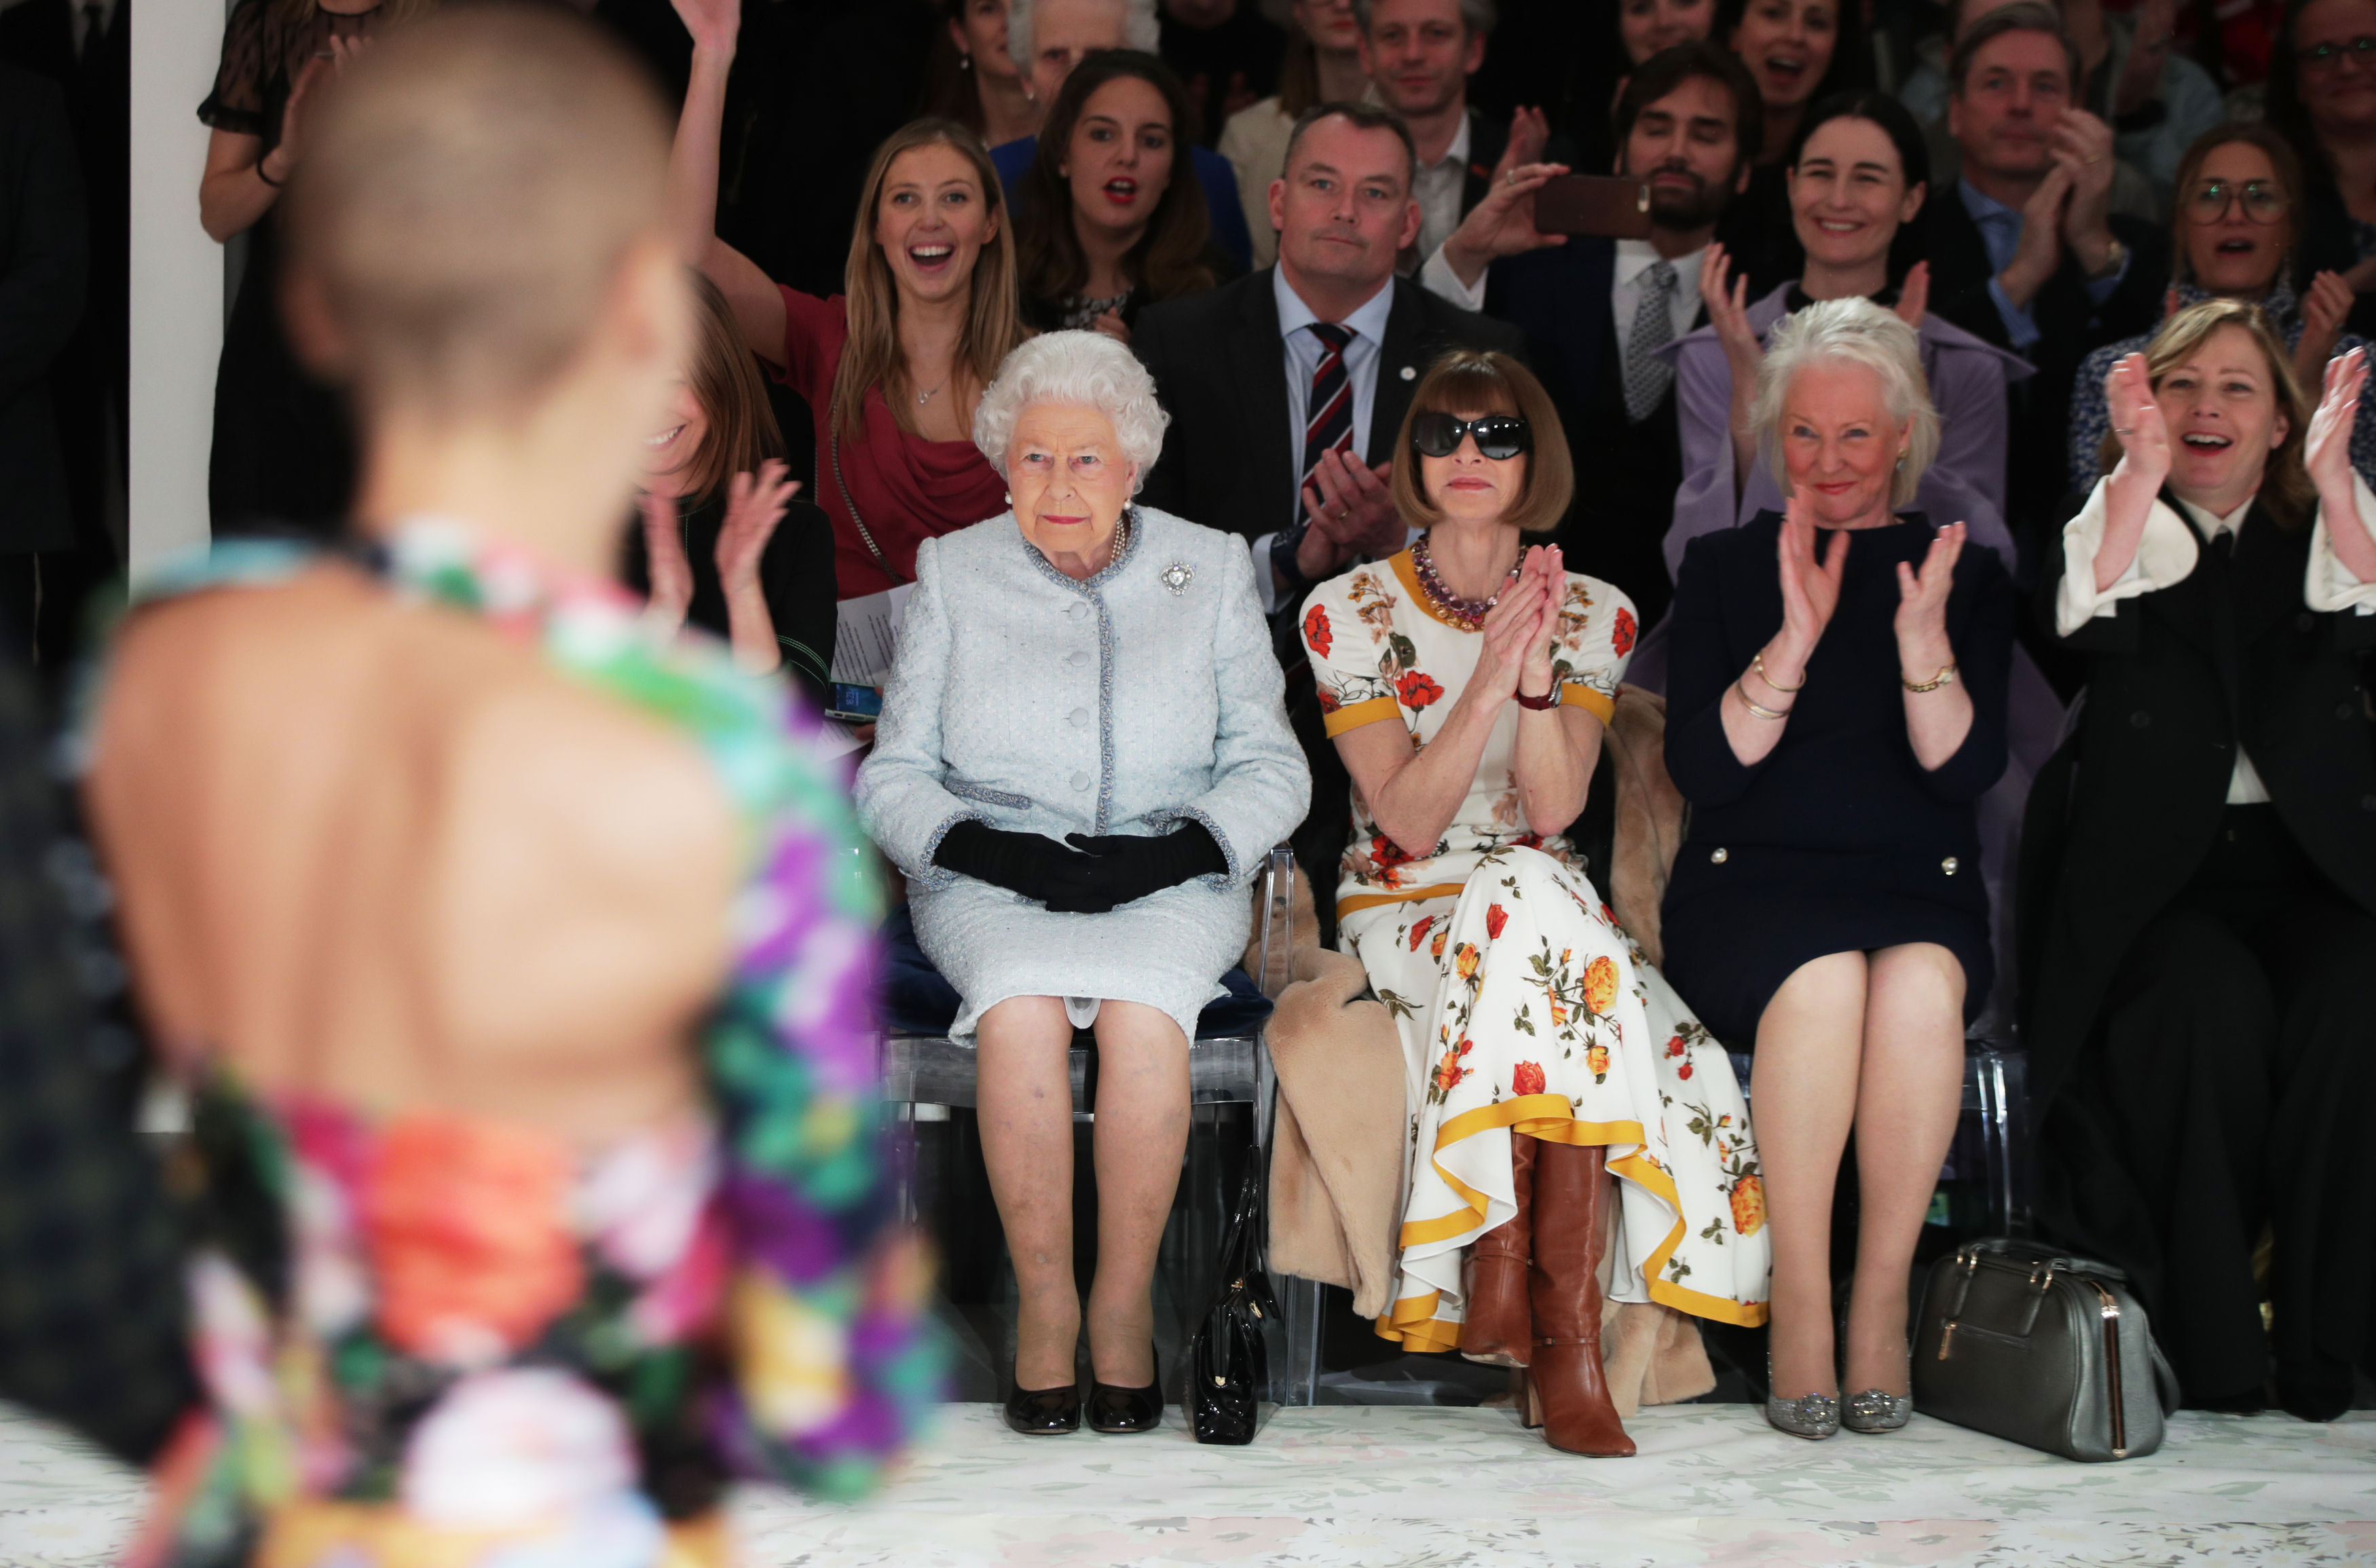 The Queen at London Fashion Week